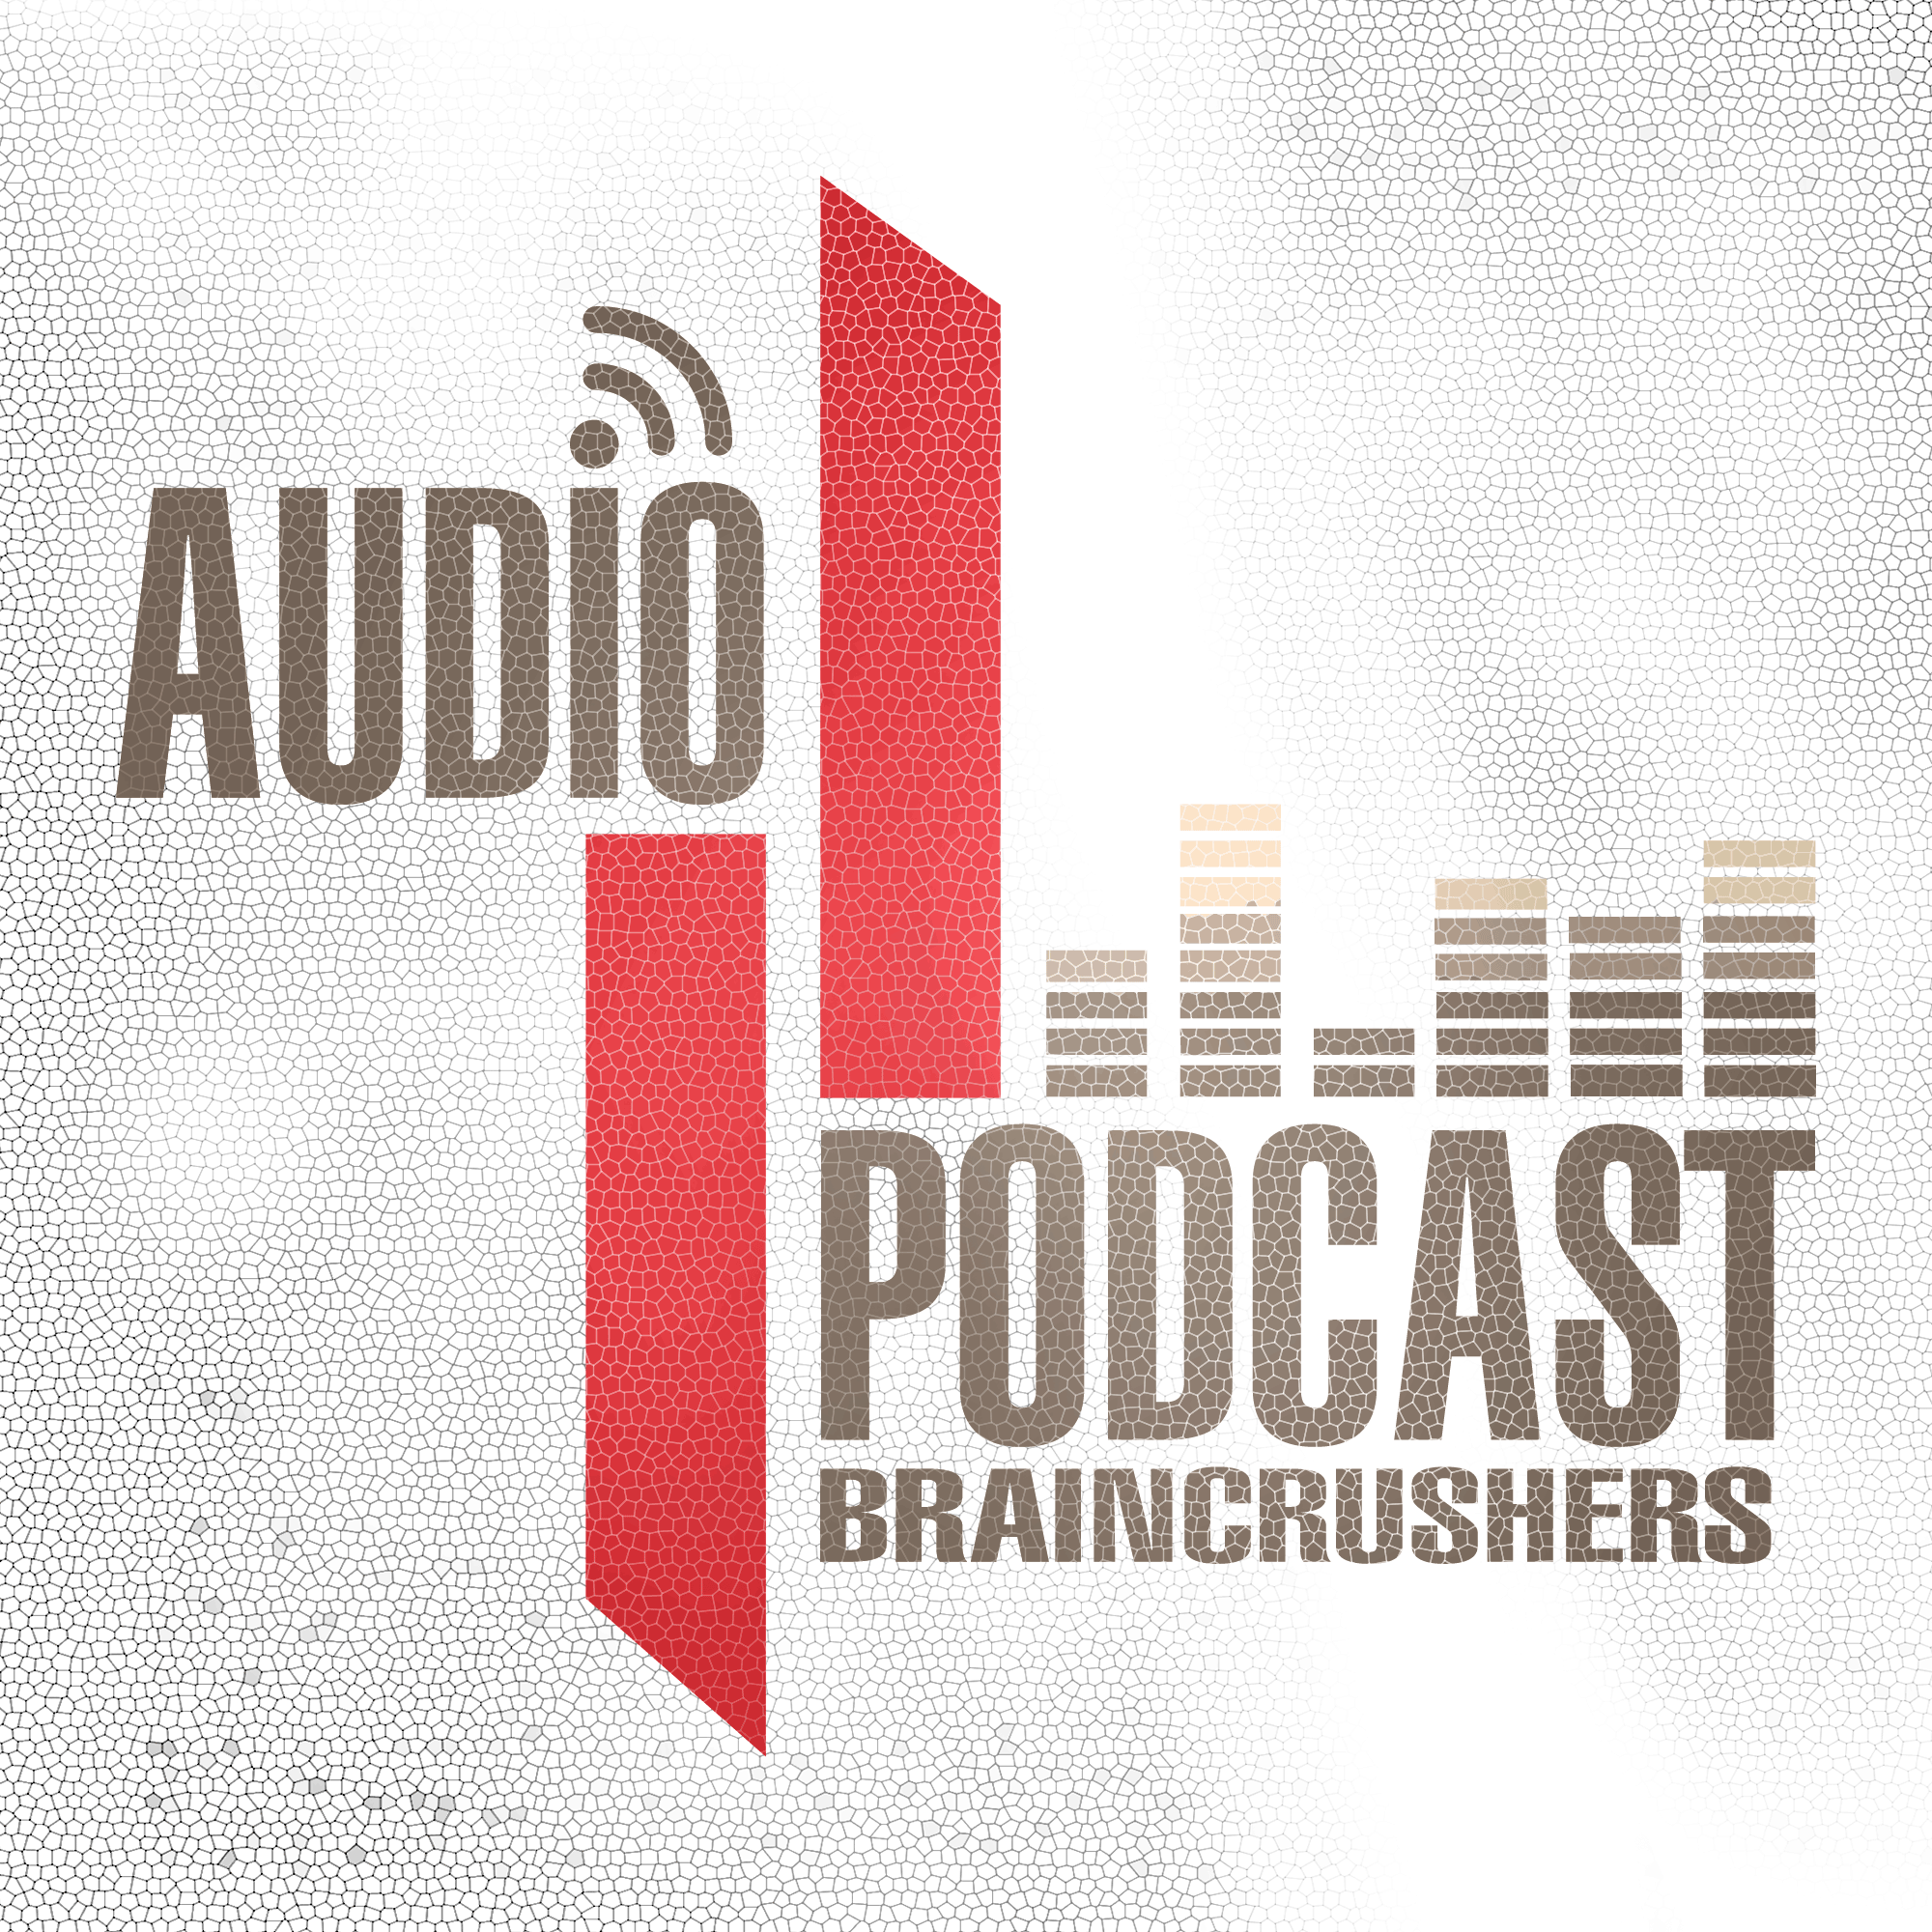 Braincrushers Audio Podcast